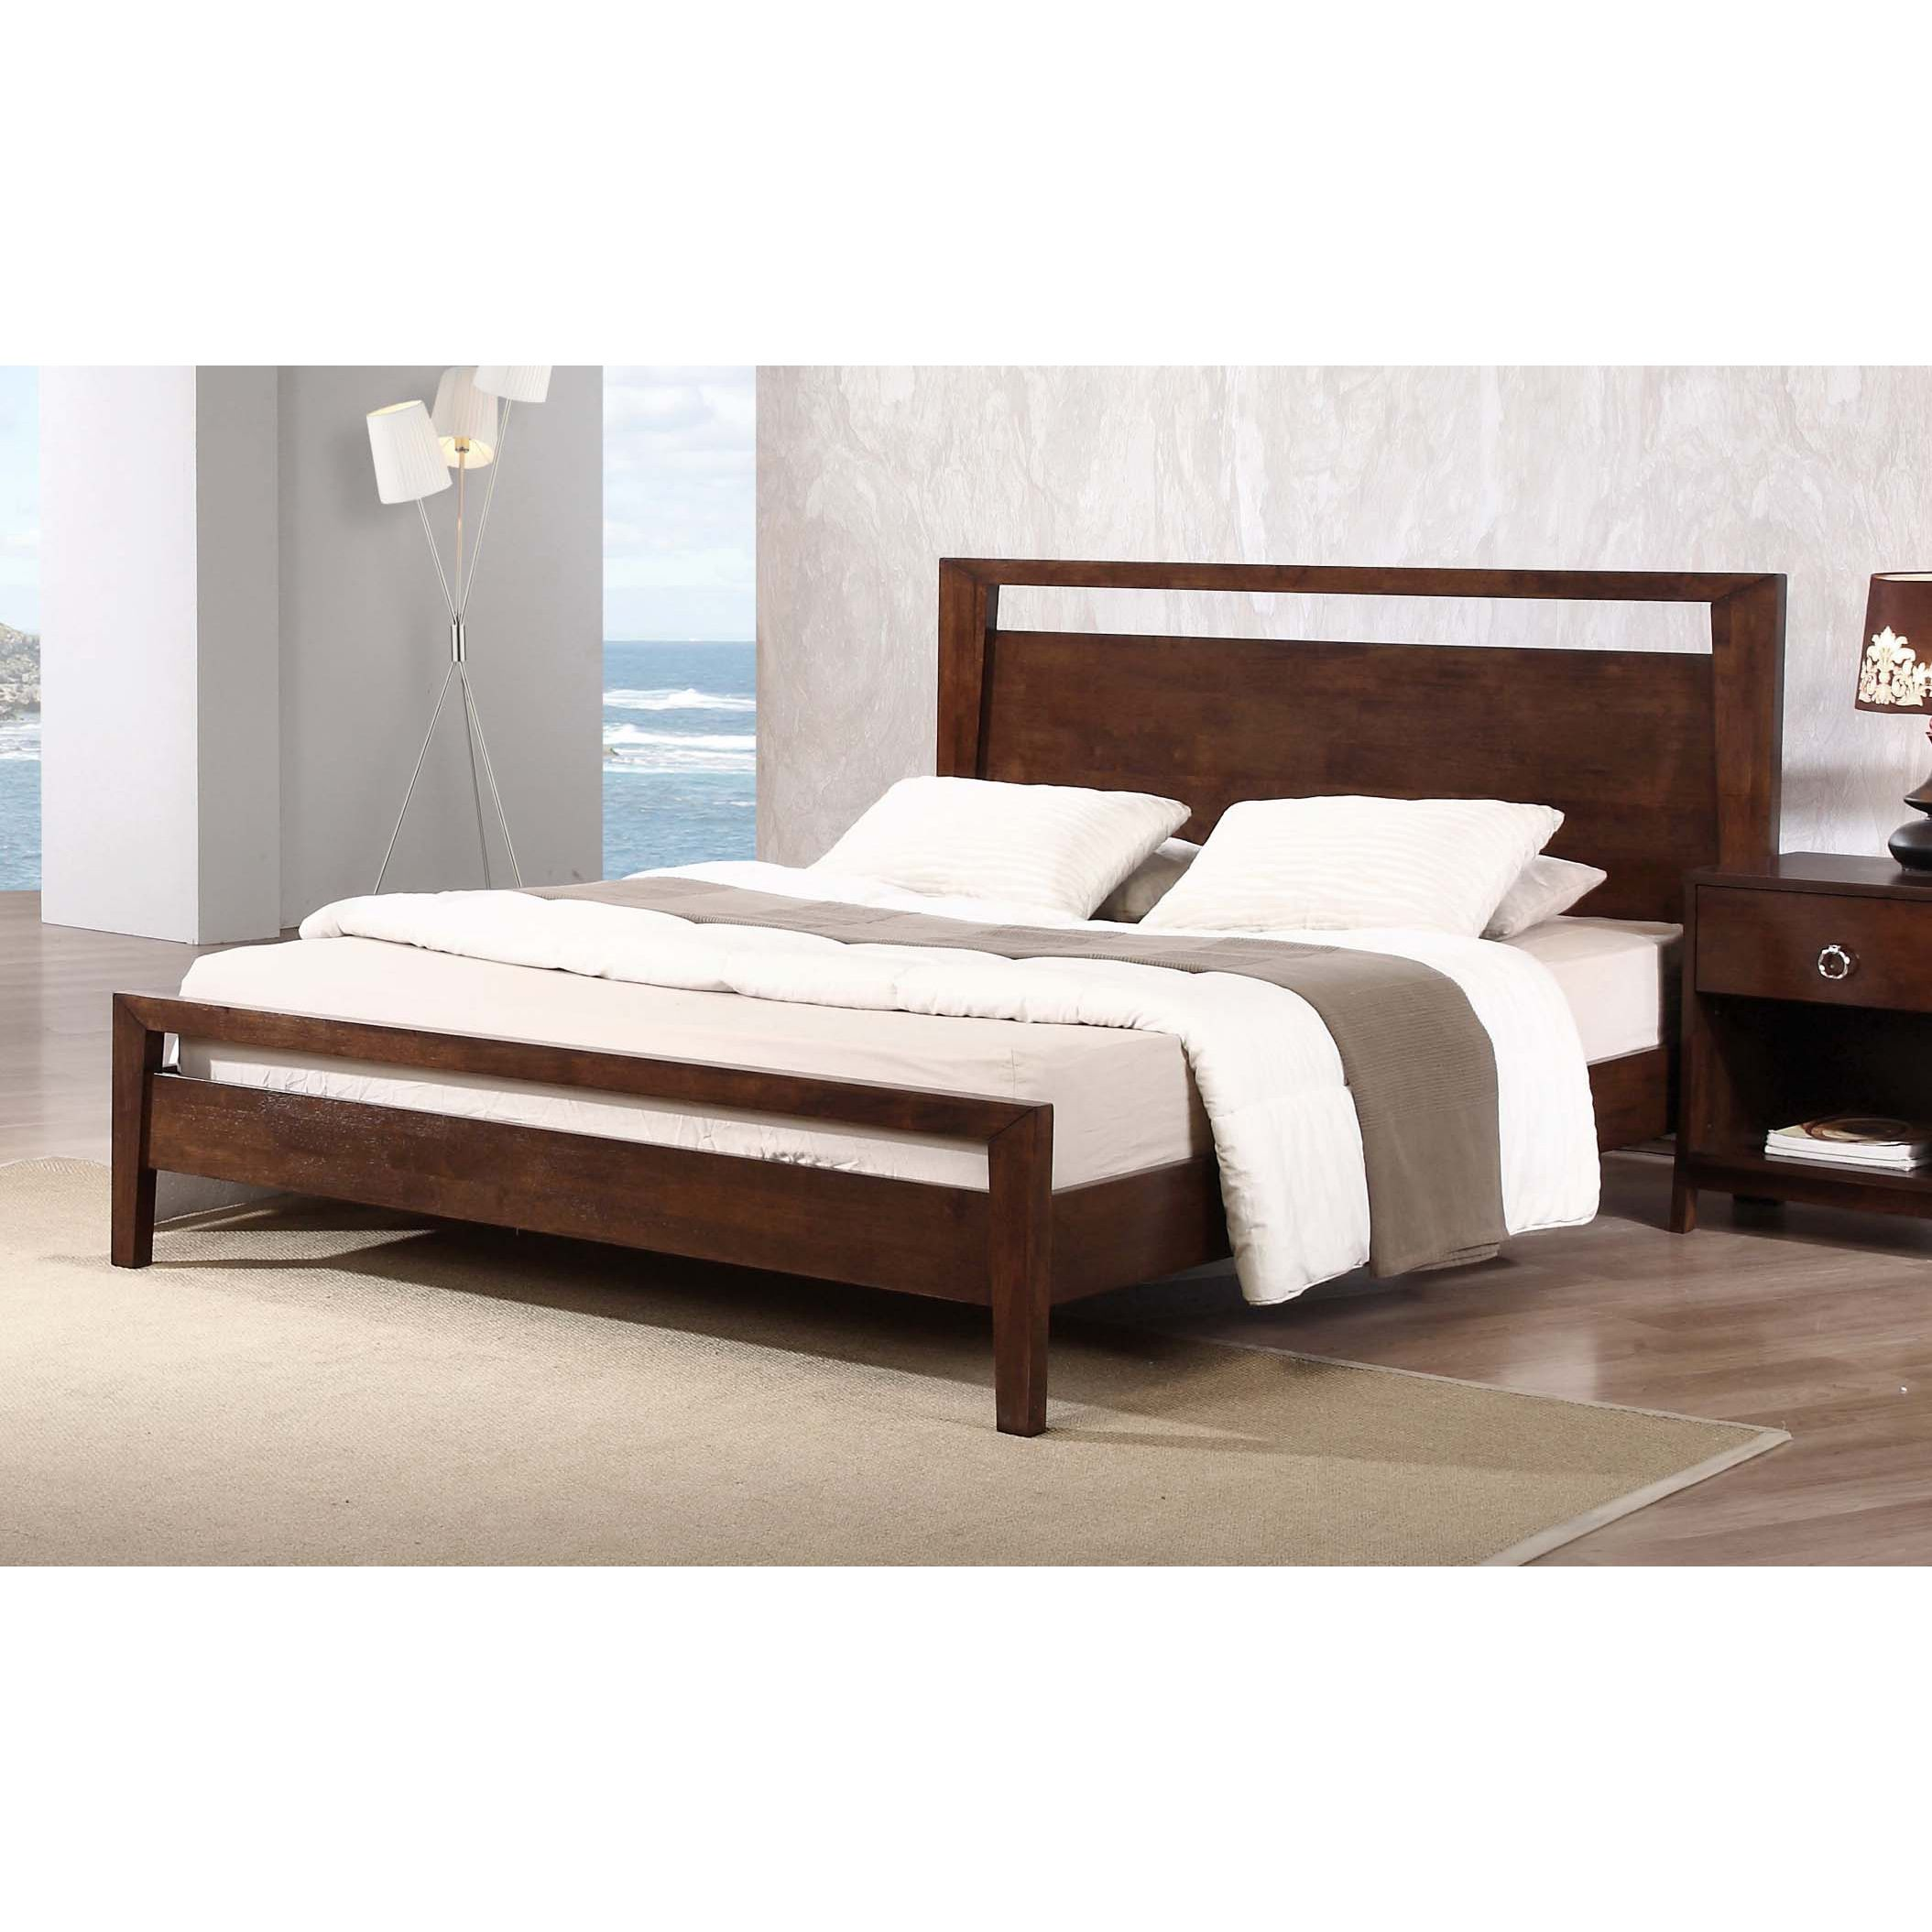 Kota Queen Platform Bed With Wood Frame And Night Stand | Queen Beds ...